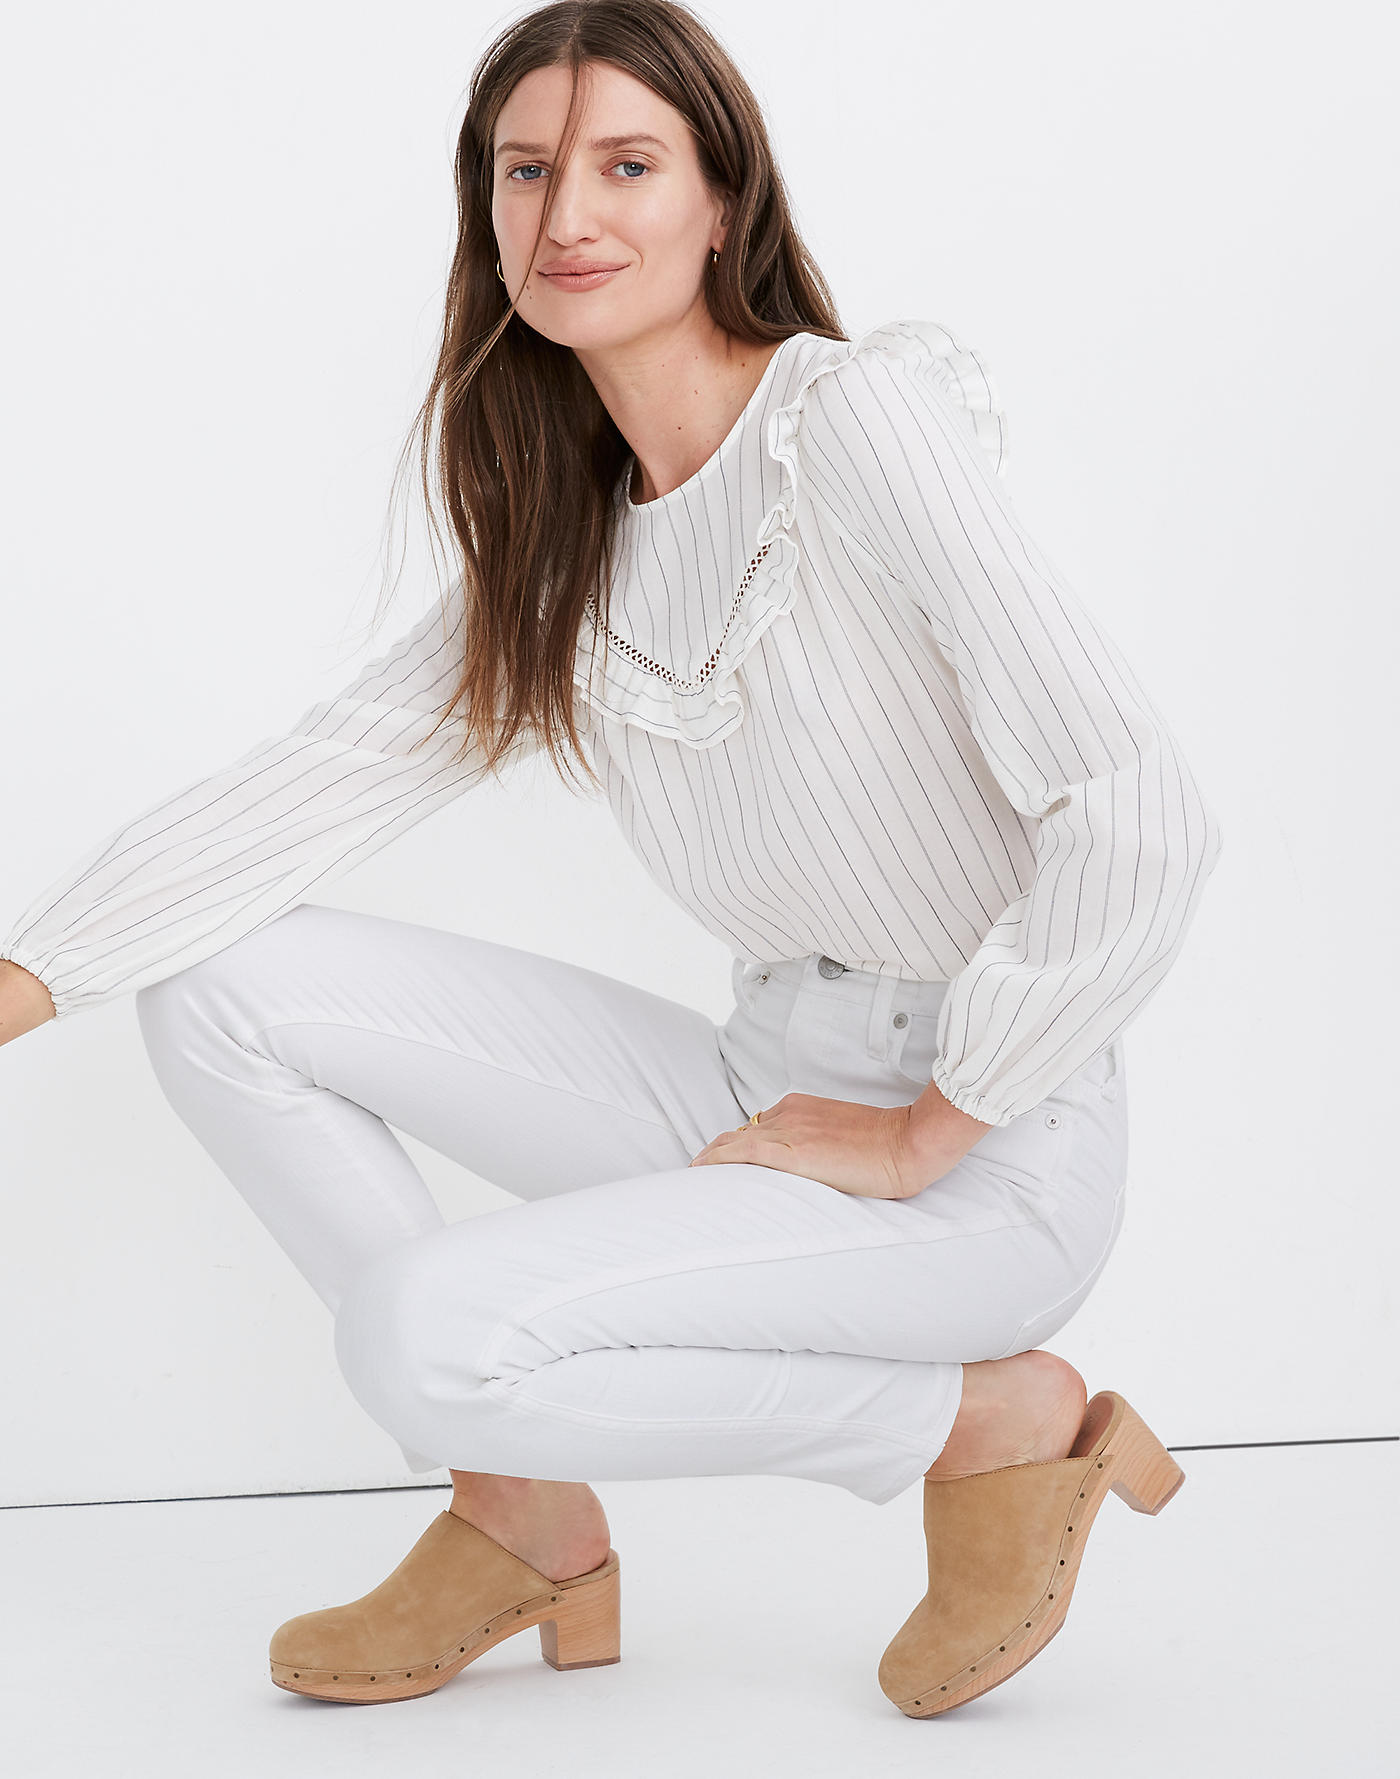 madewell white jeans labor day white jeans